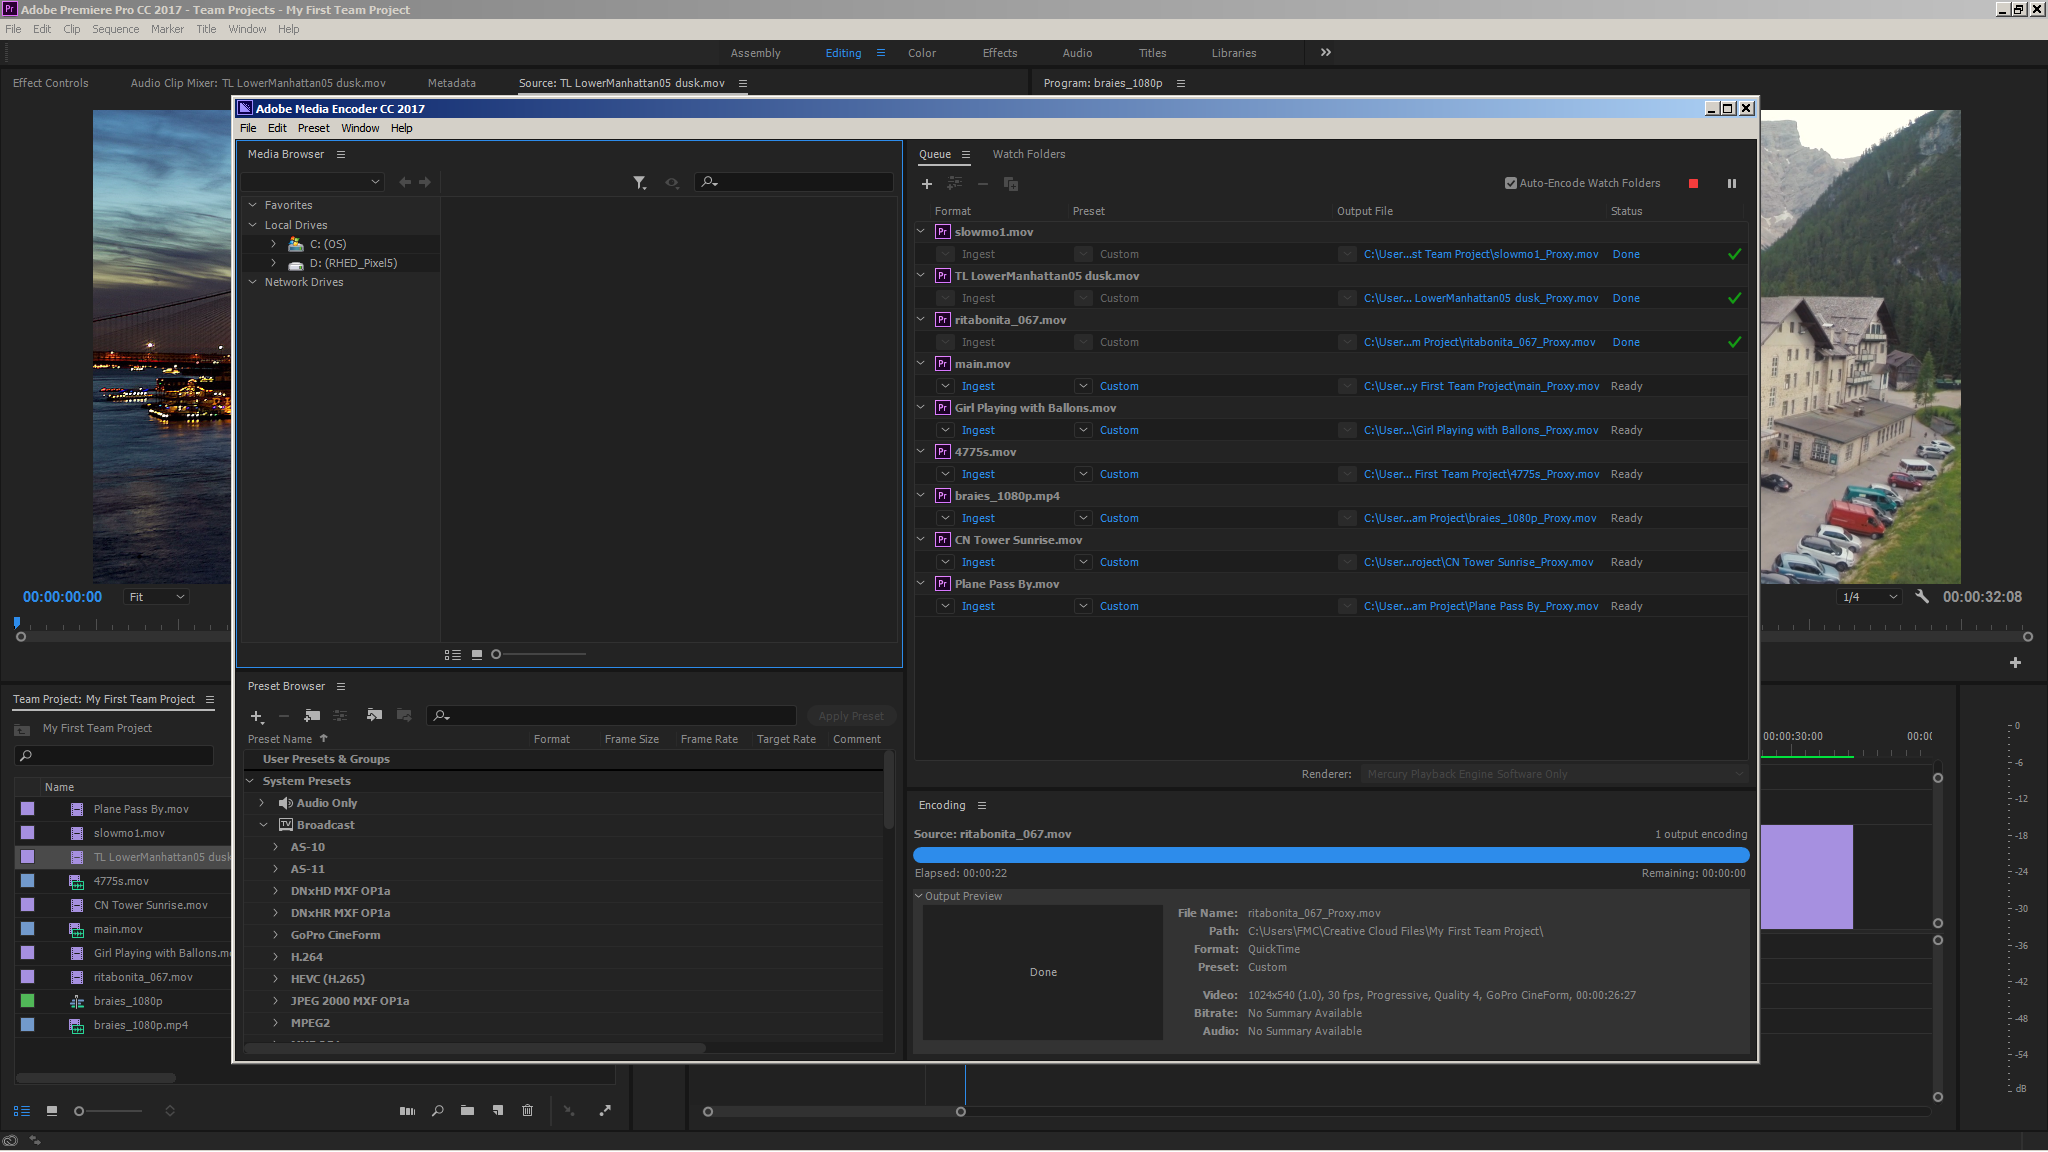 Media Encoder creating proxies in the background based on the current ingest setting for the Team Project.